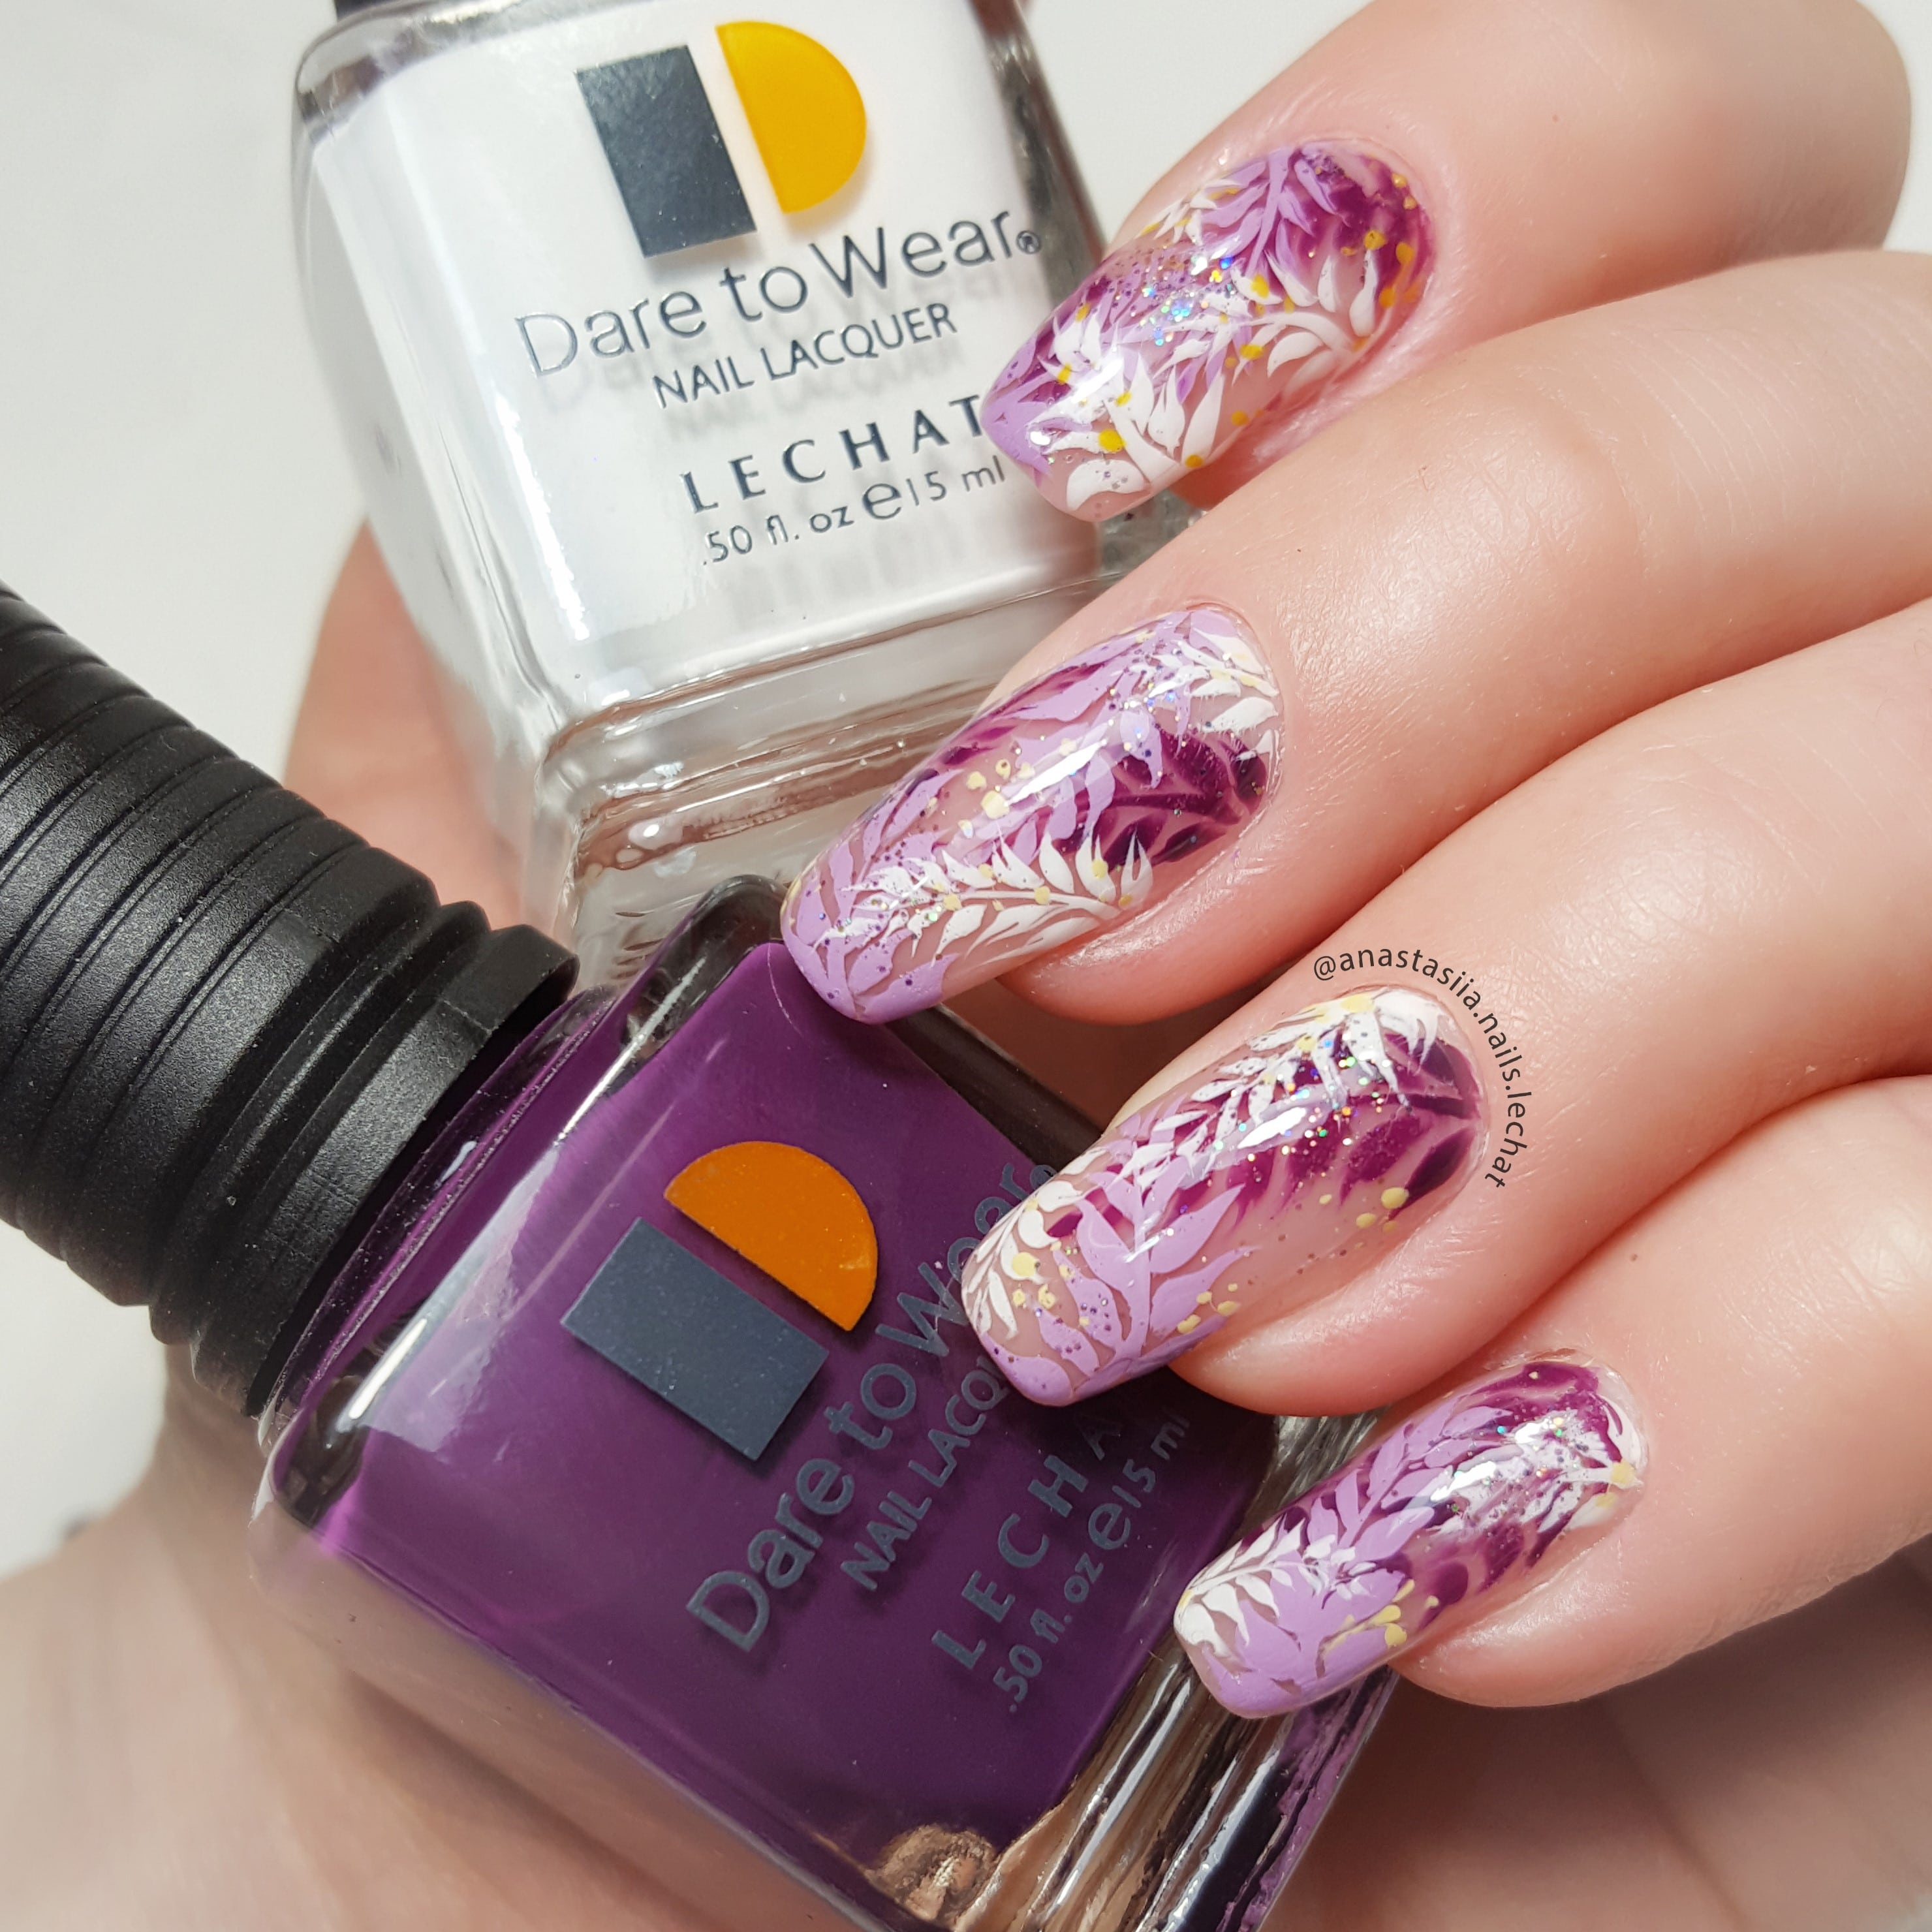 Dare to Wear nail art with purple and white flowers